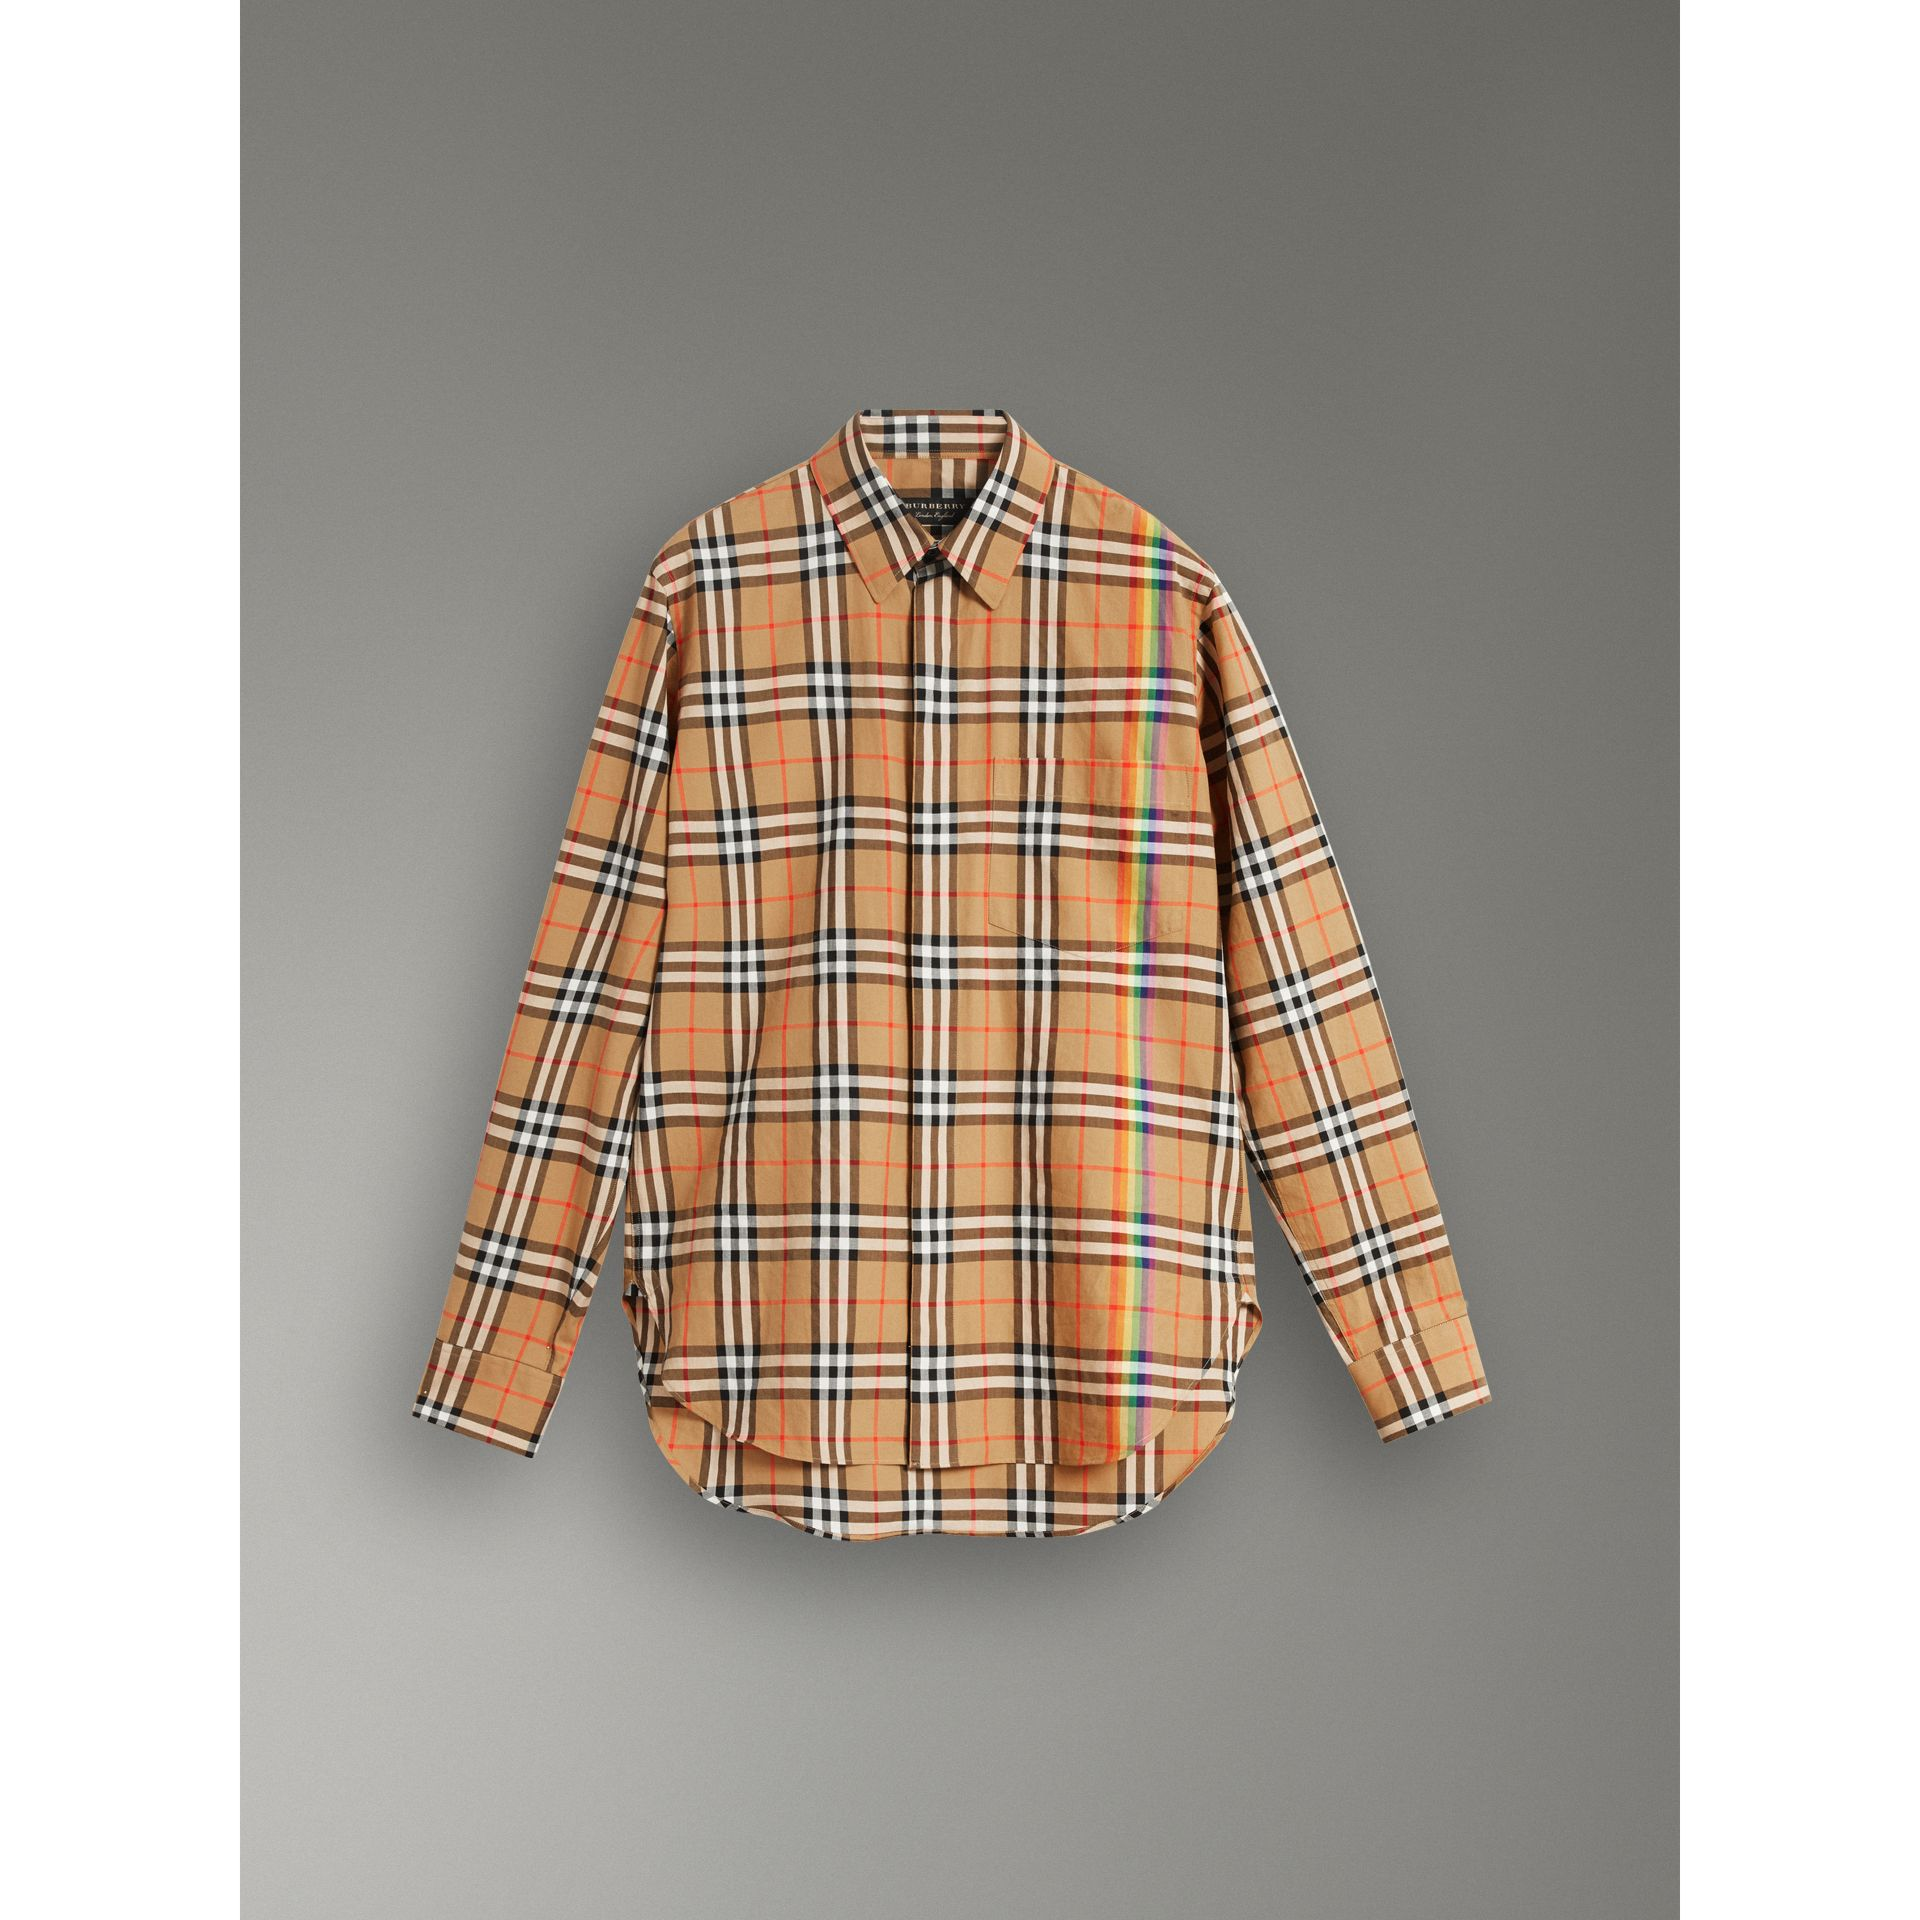 Rainbow Vintage Check Shirt in Antique Yellow - Men | Burberry United States - gallery image 3